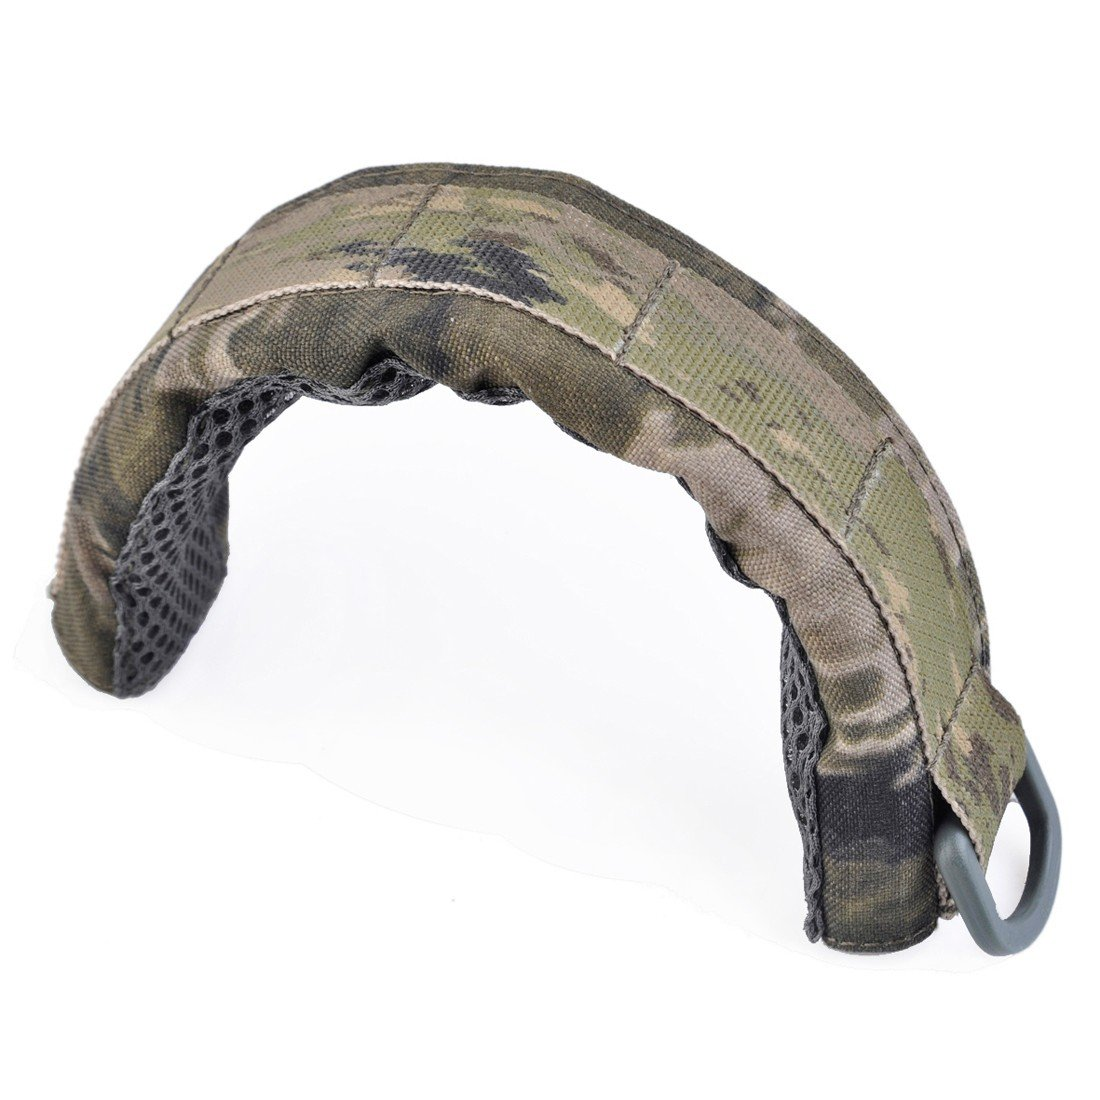 OPSMEN Headband Advanced Modular Headset Cover Fit For All General Tactical Earmuffs Accessories Upgrade Bags Case A-TACS IX by OPSMEN